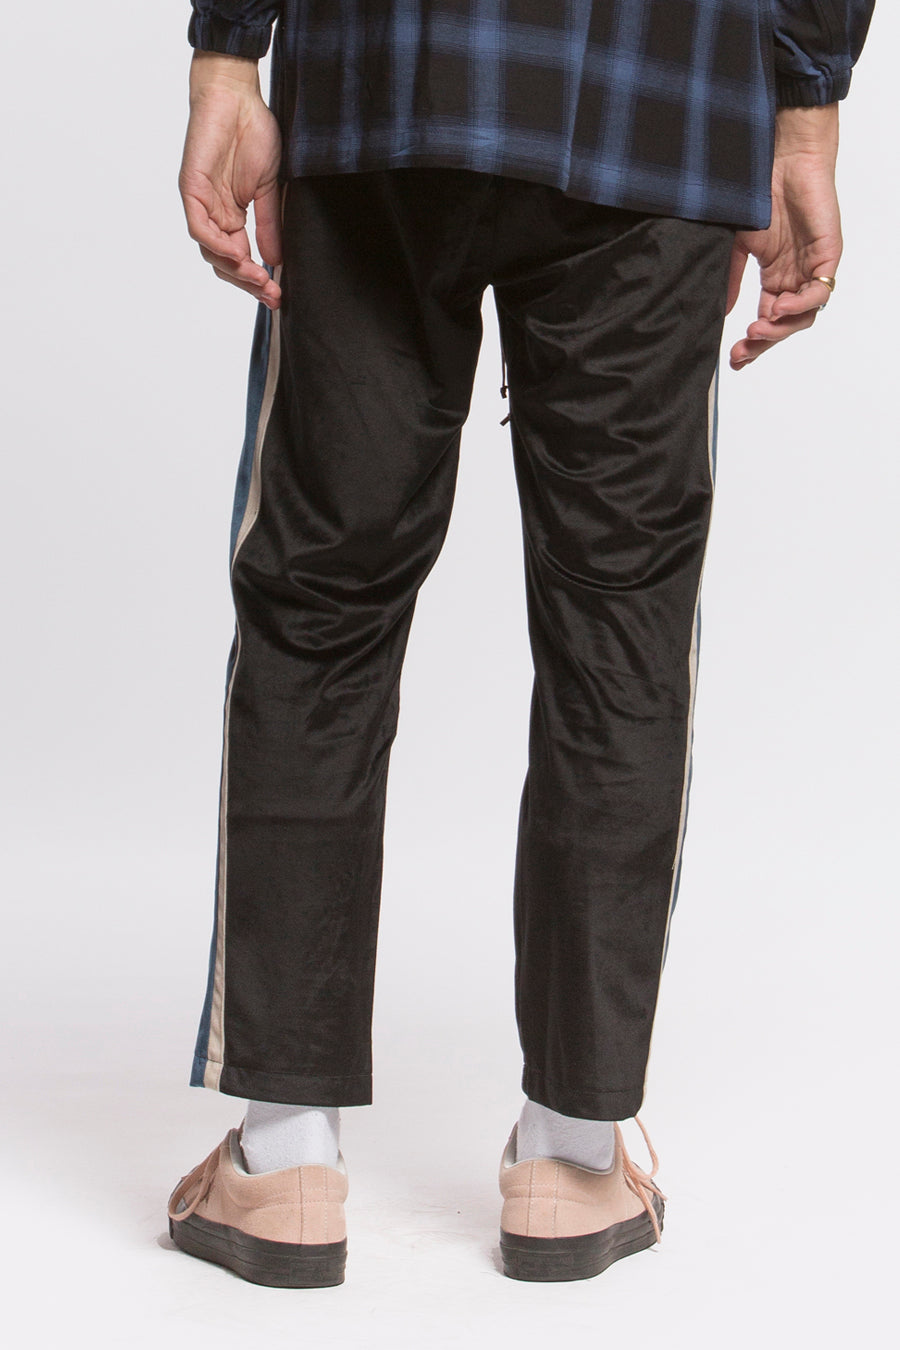 candorofficial - TRACK PANT - Bottoms